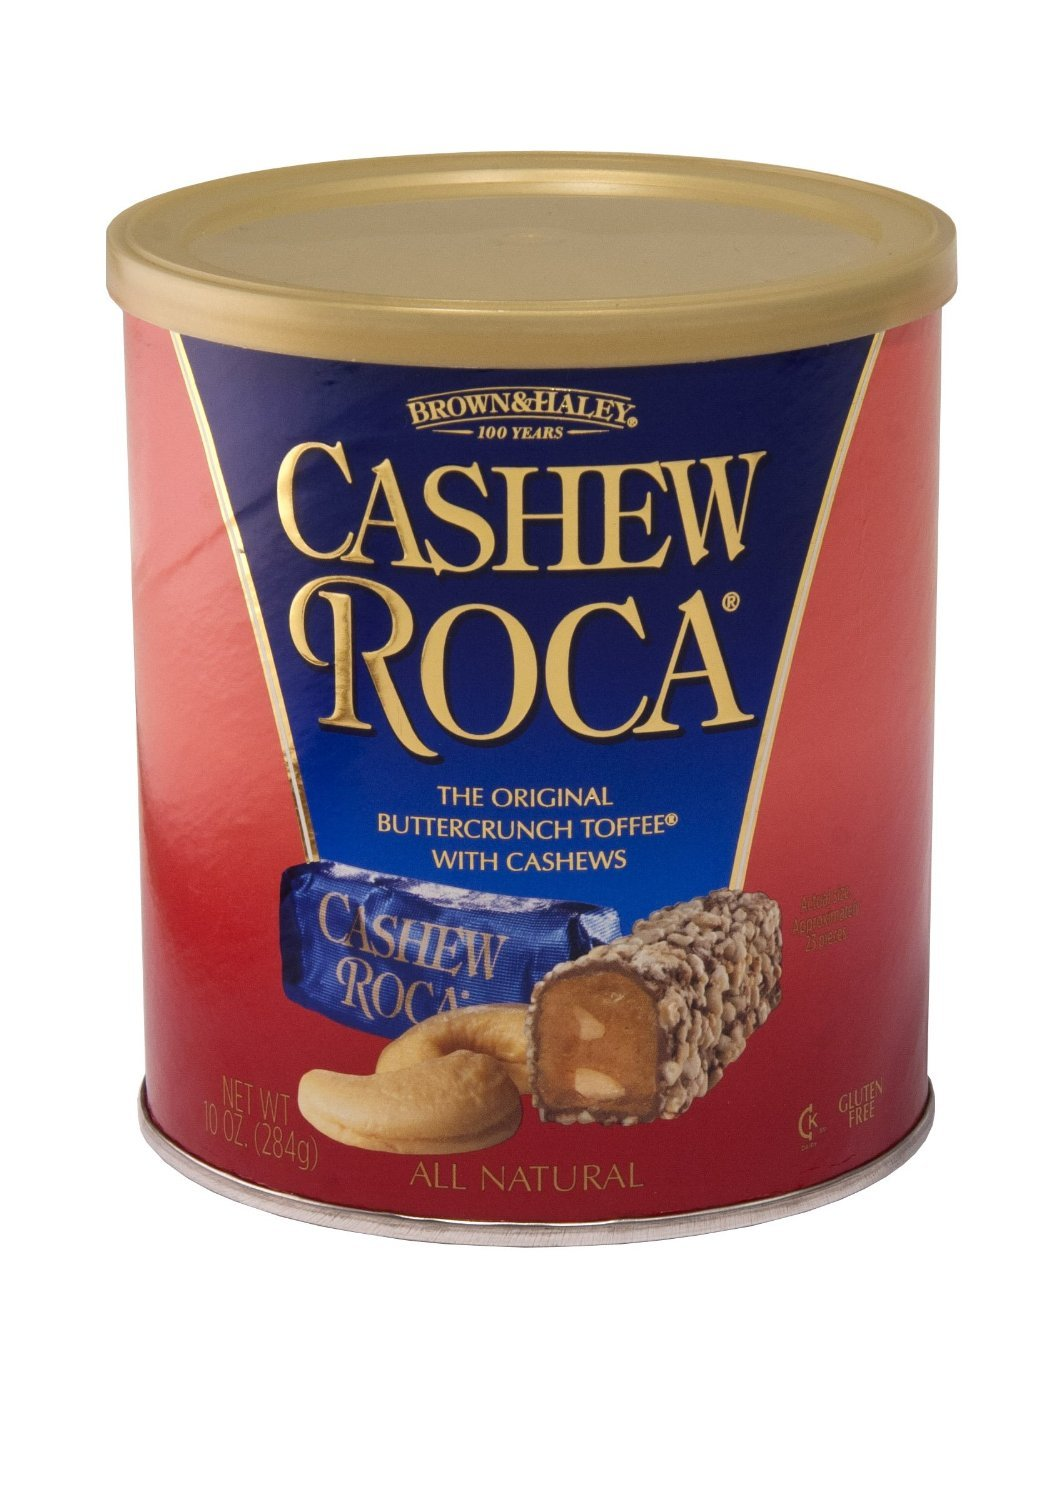 Brown Haley Cashew Roca 10oz Canister (2 Pack)